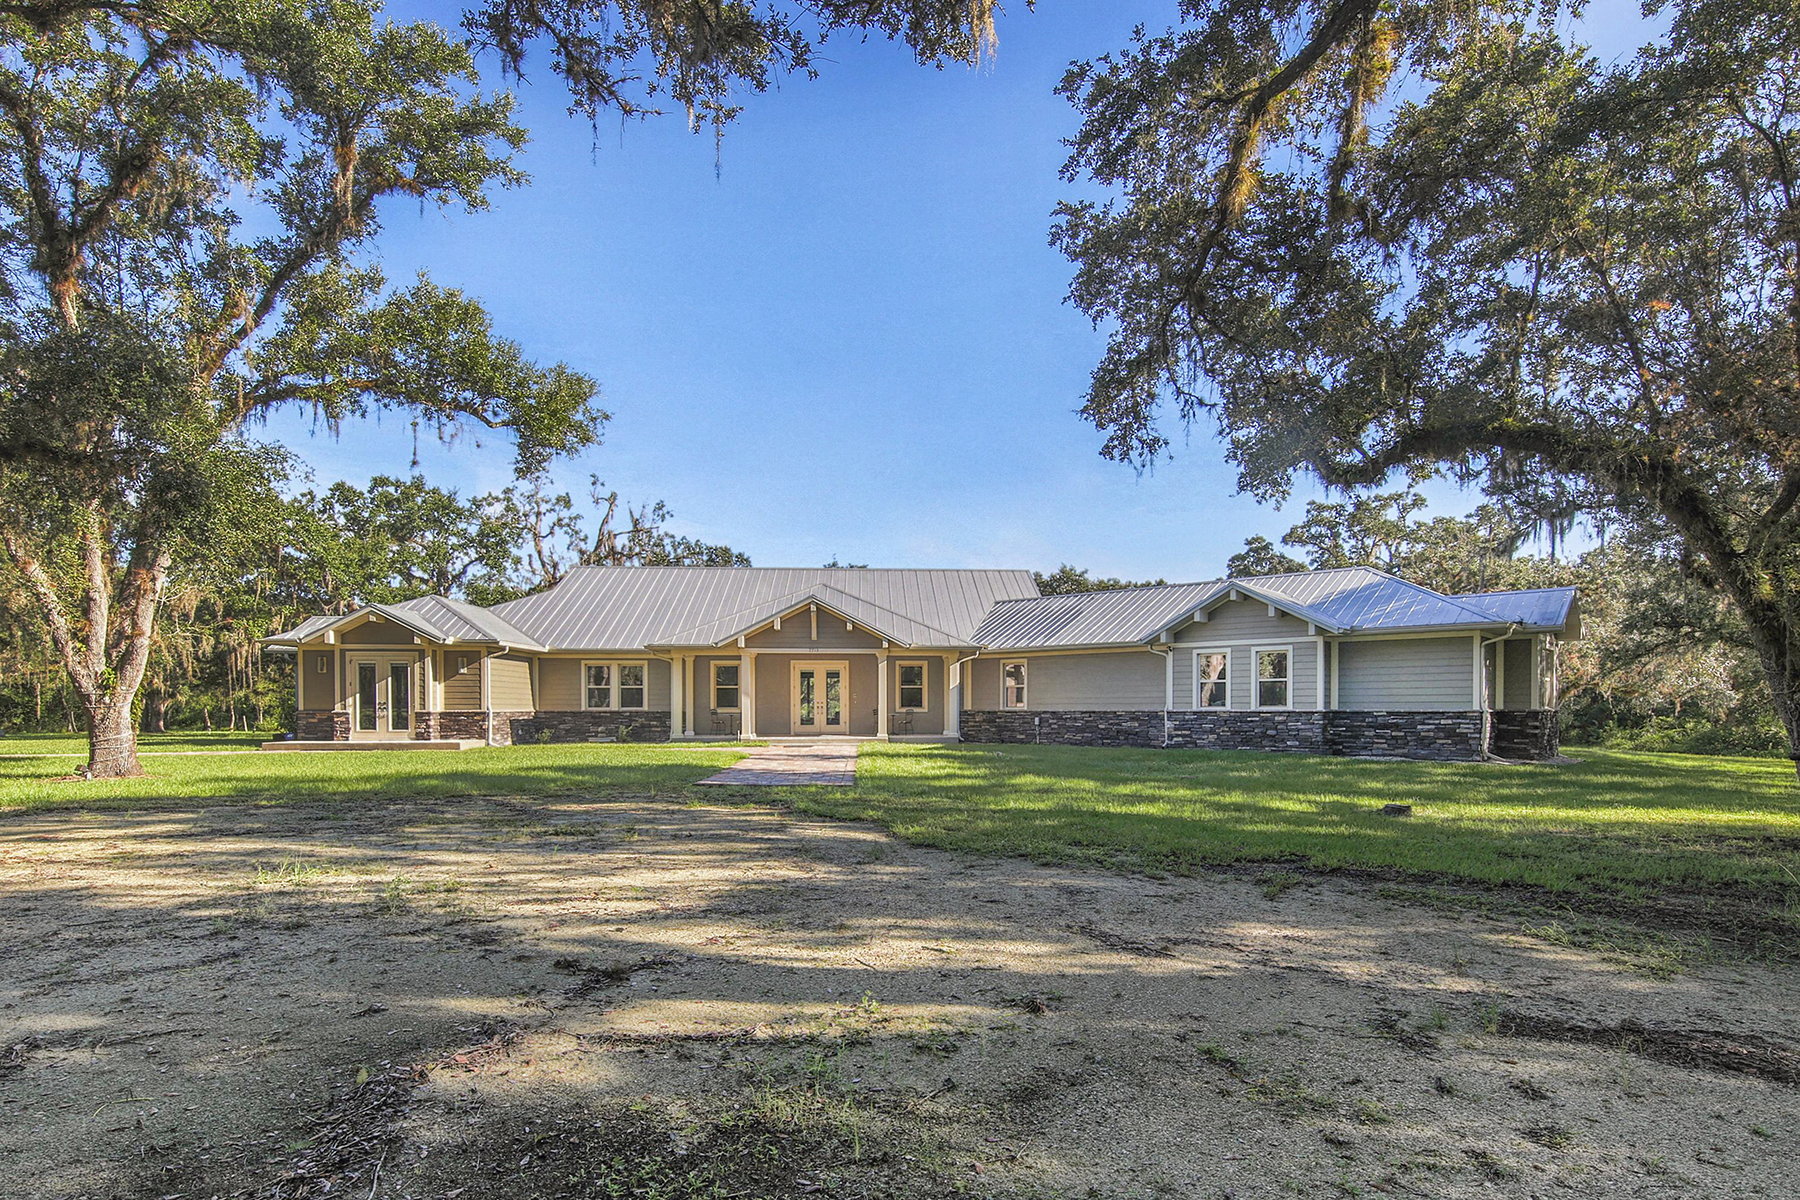 Single Family Home for Sale at ARCADIA 7713 SW Vineyard Terr, Arcadia, Florida 34269 United States